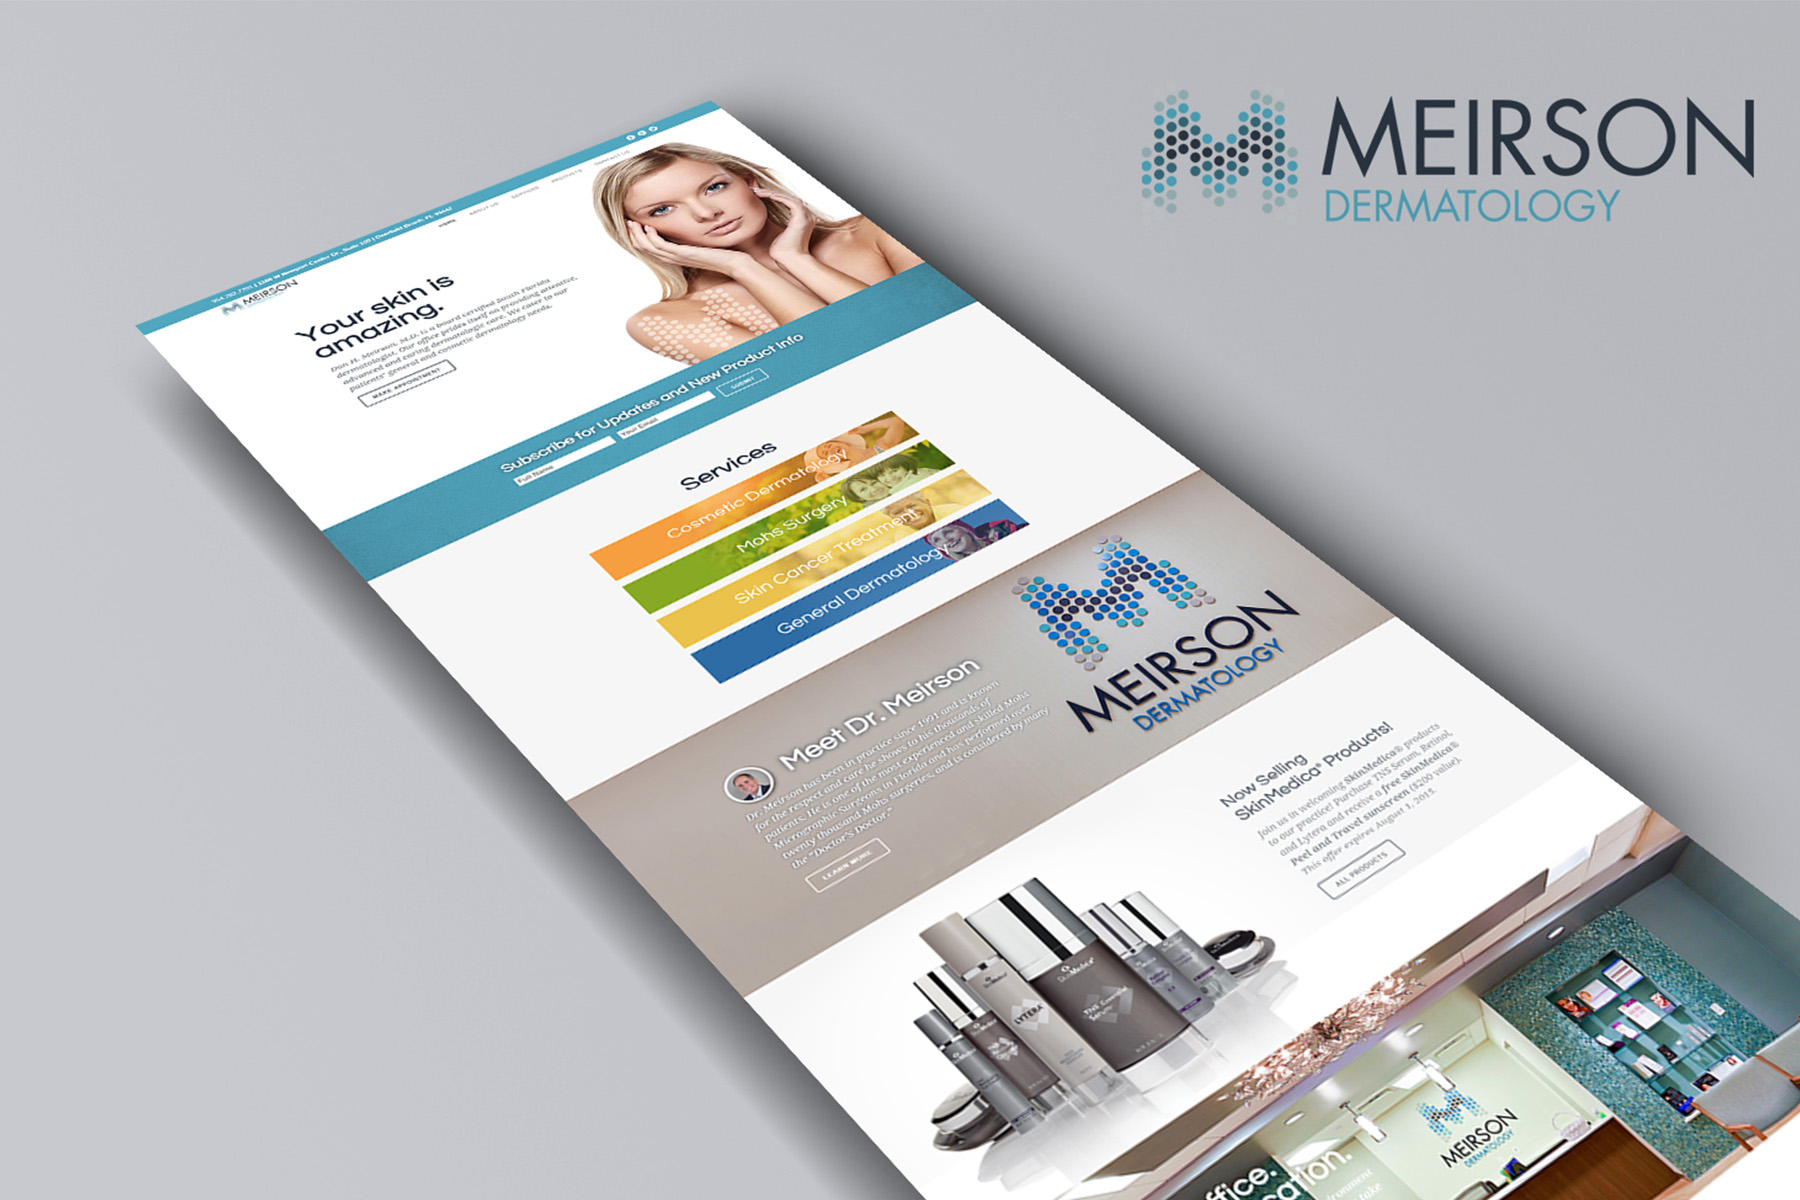 broward marketing clients services ad agency_0008_meirson